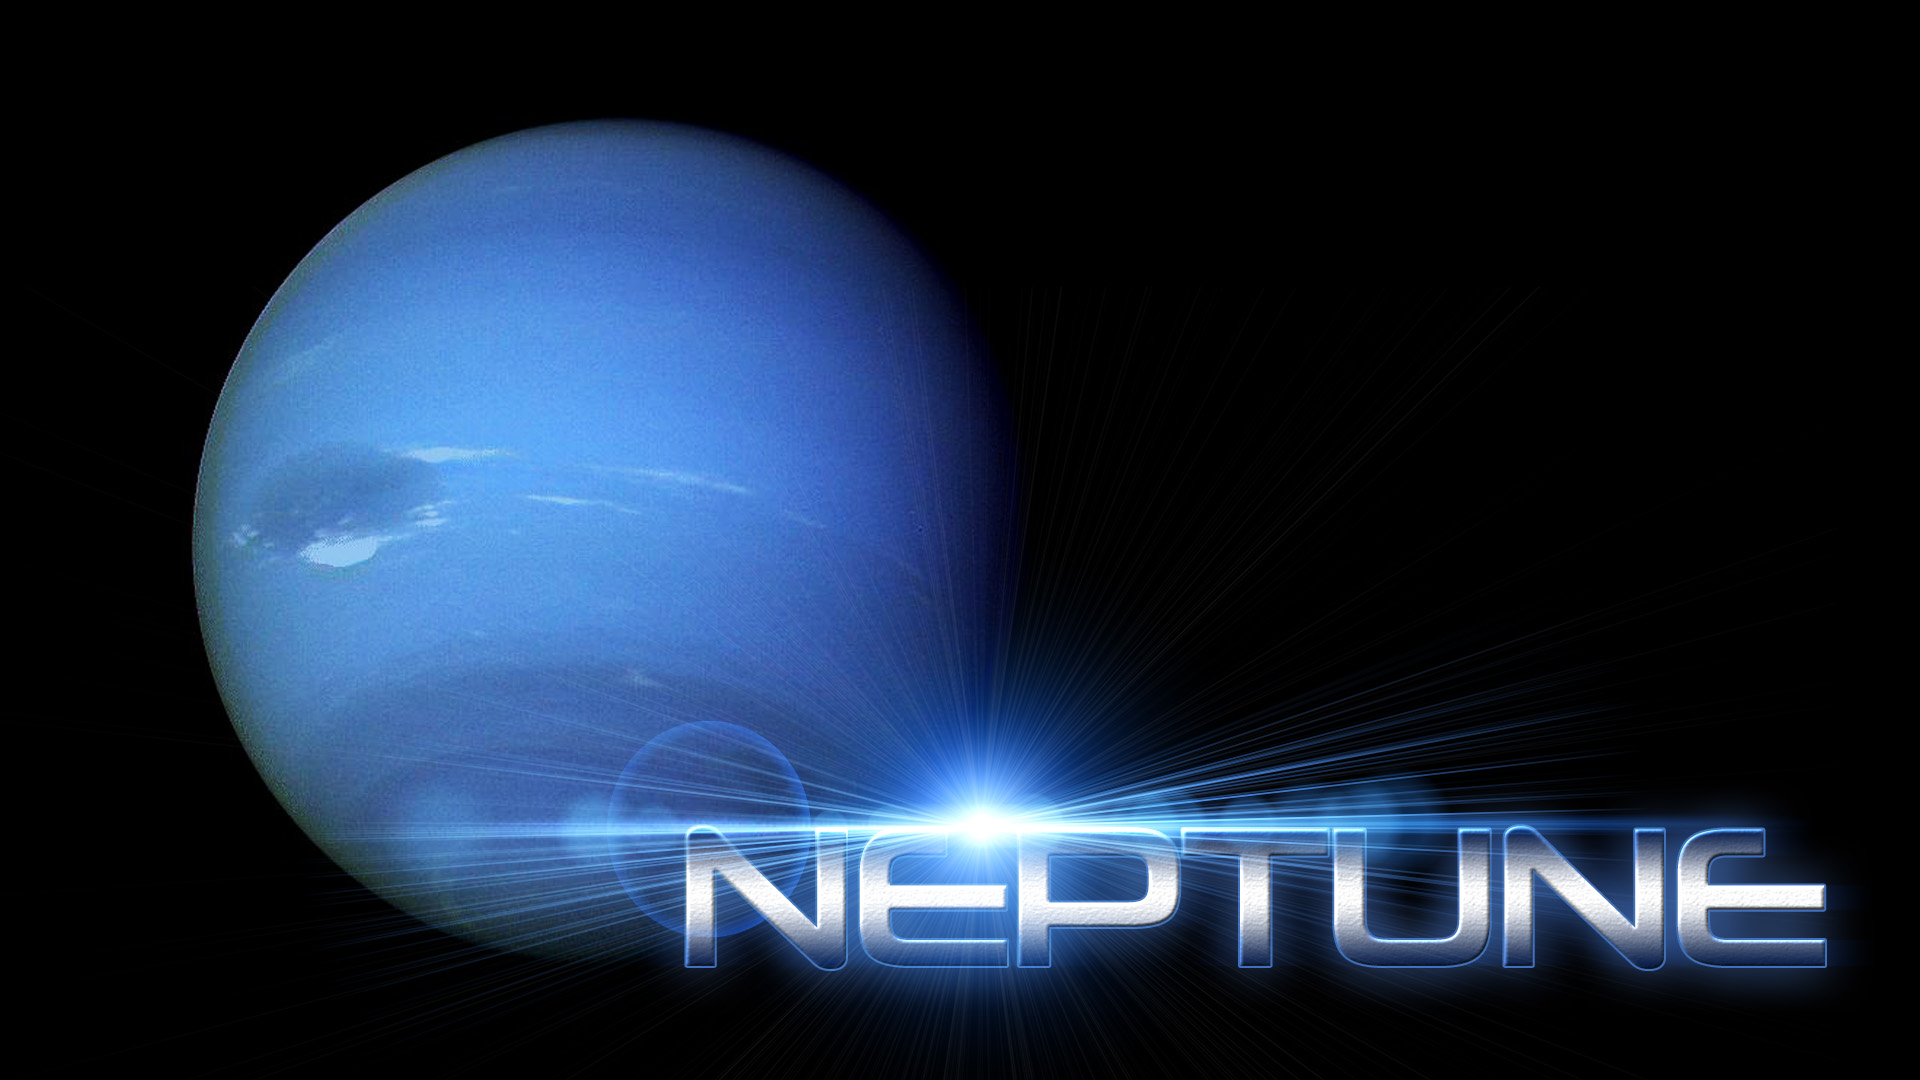 Neptune Wallpapers 778M231 028 Mb   4USkY 1920x1080